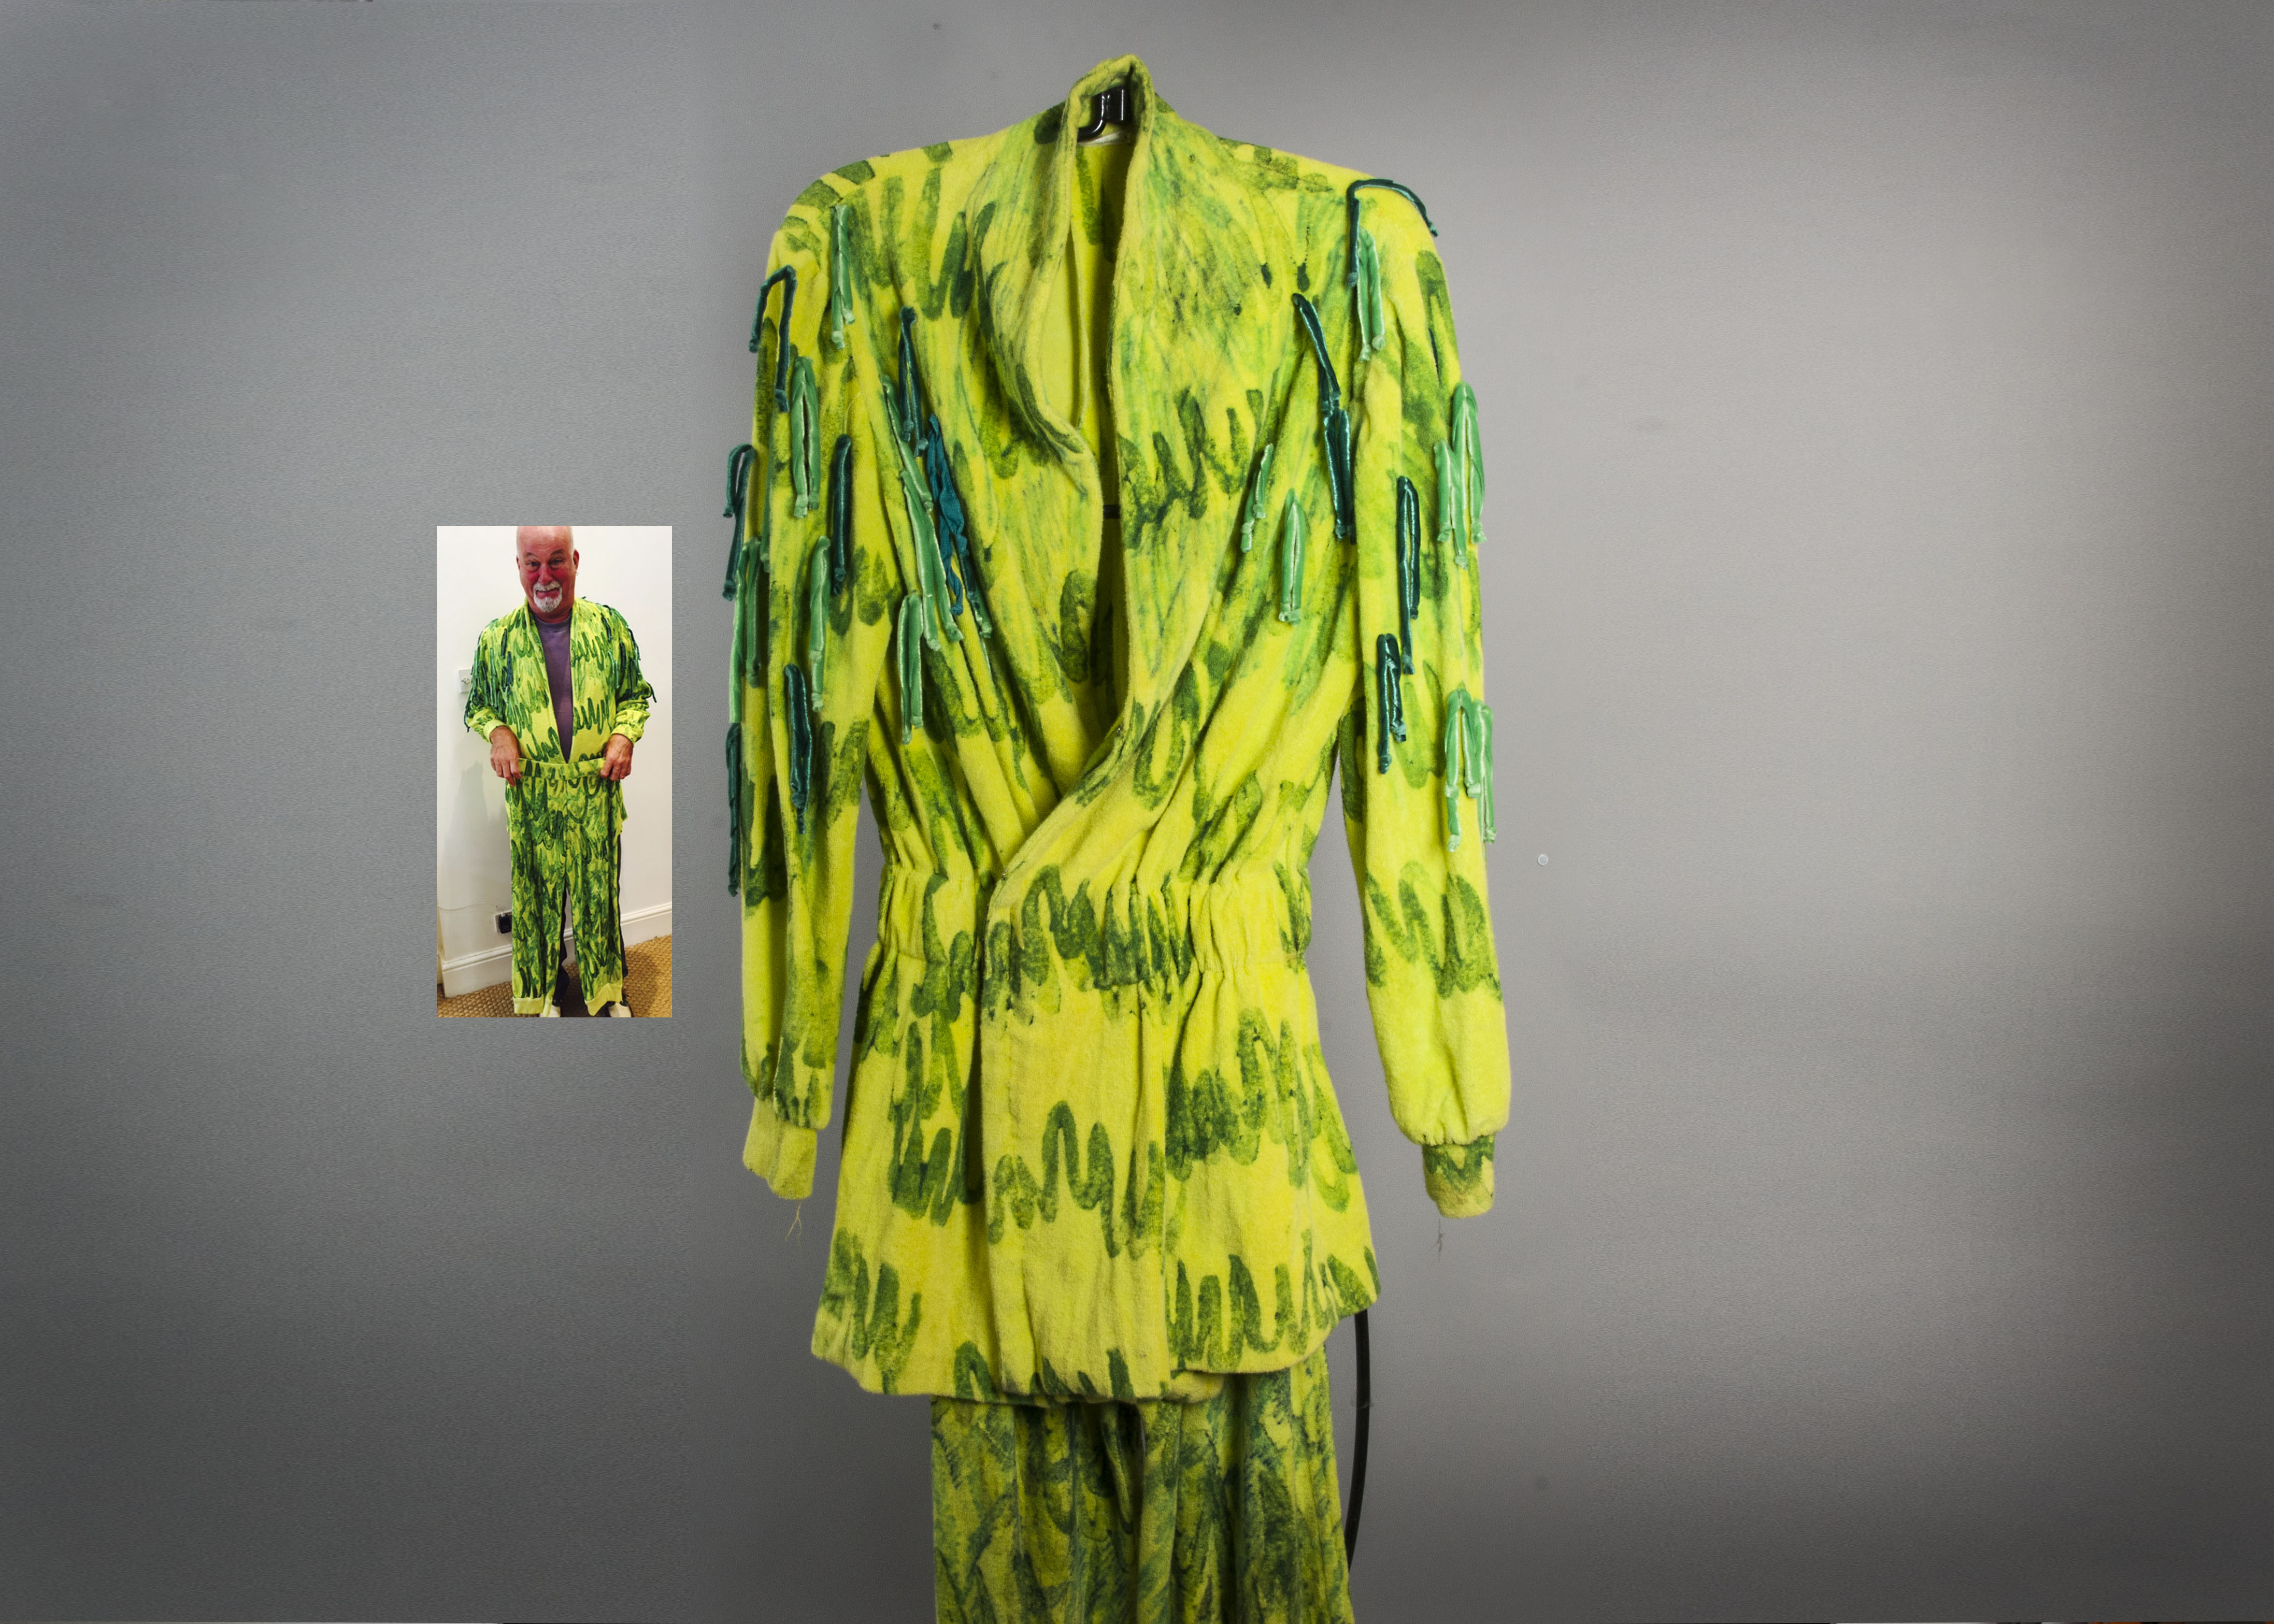 Lot 688 - Jethro Tull / Dave Pegg, Dave Pegg's first stage costume after joining Jethro Tull. A towelling suit